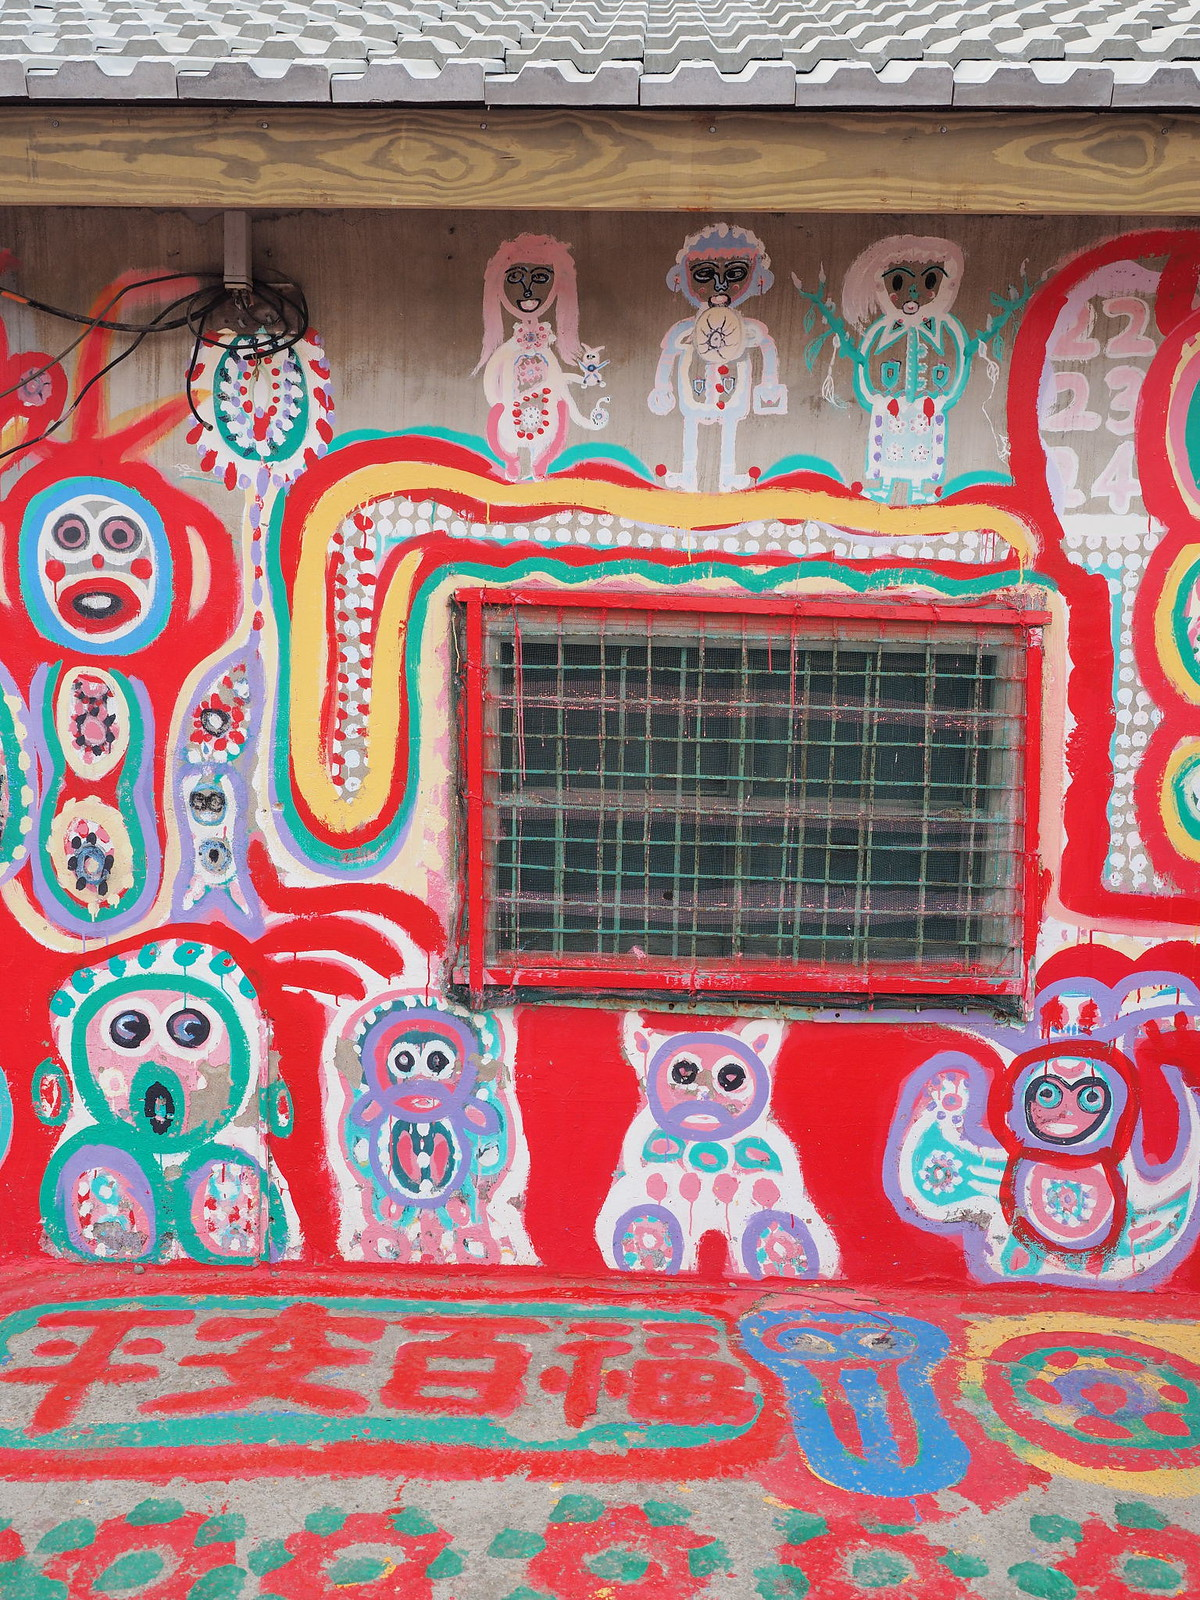 More characters at Rainbow Village (彩虹眷村)